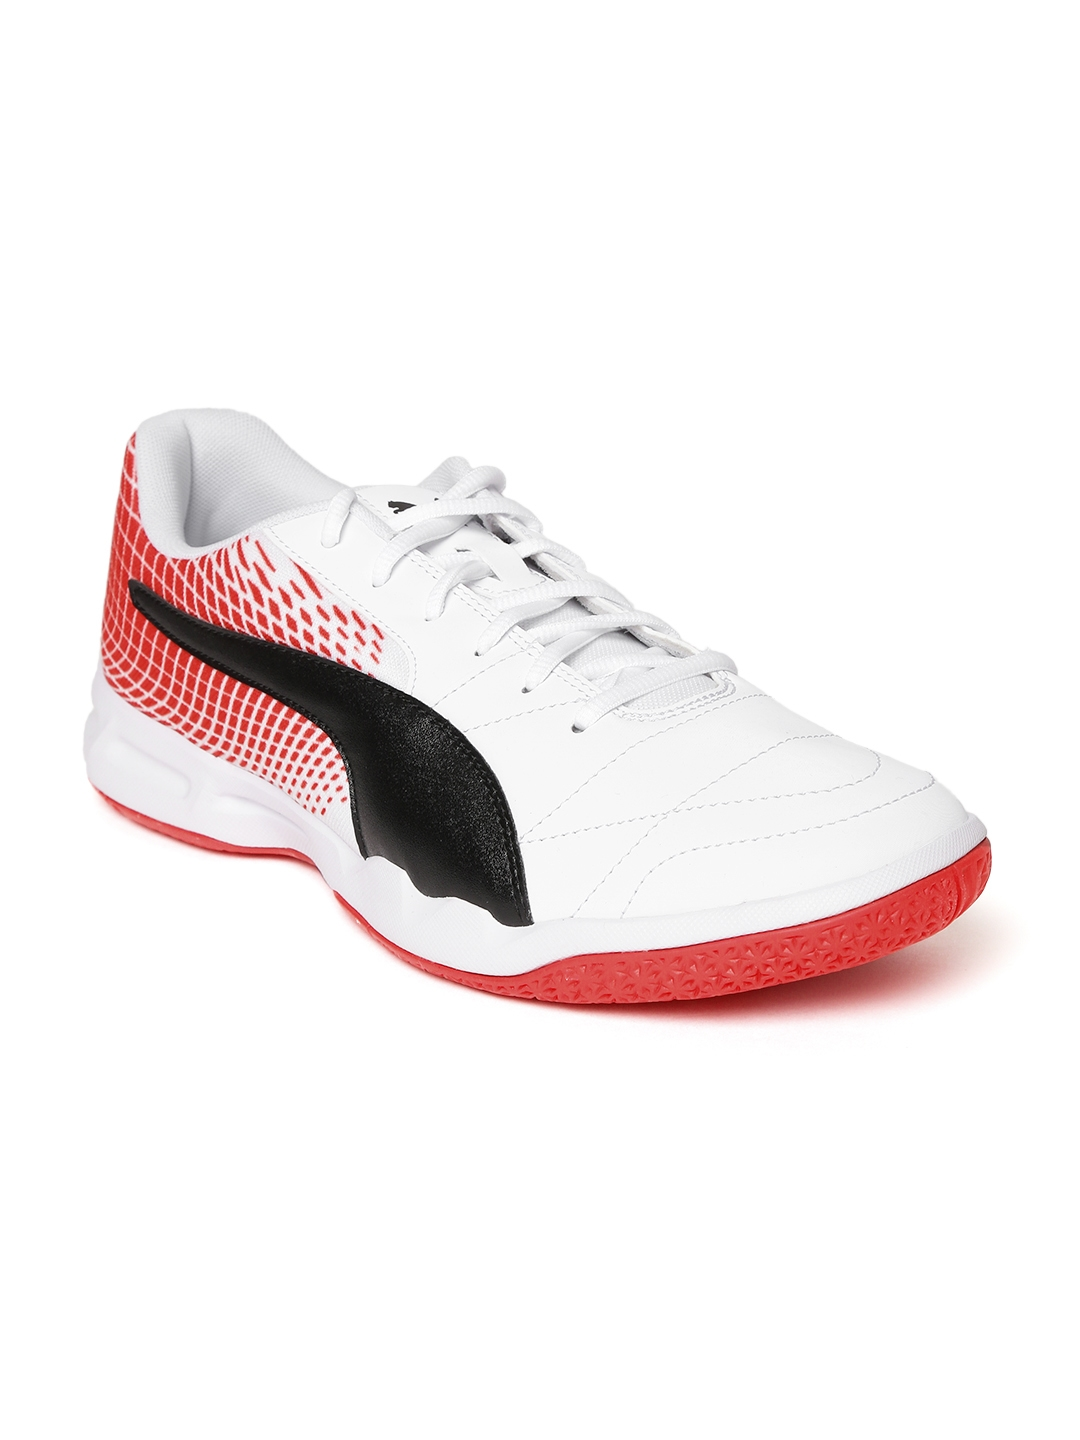 725c96aad4f Buy Puma Men White Veloz Indoor NG Badminton Shoes - Sports Shoes ...